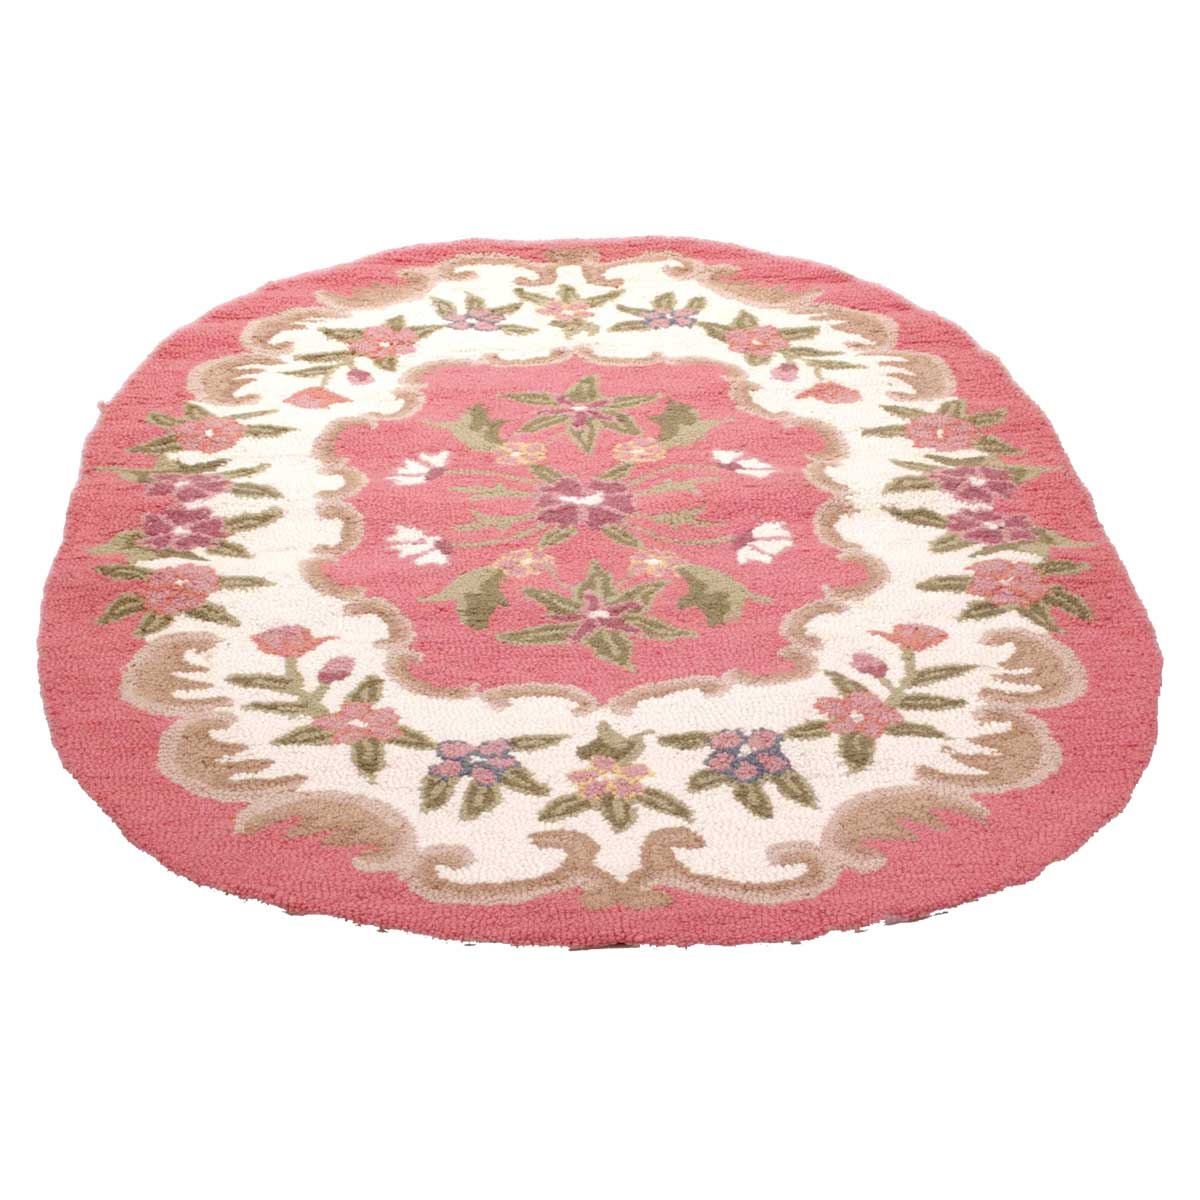 Oval Area Rug 6' X 4' Pink Wool